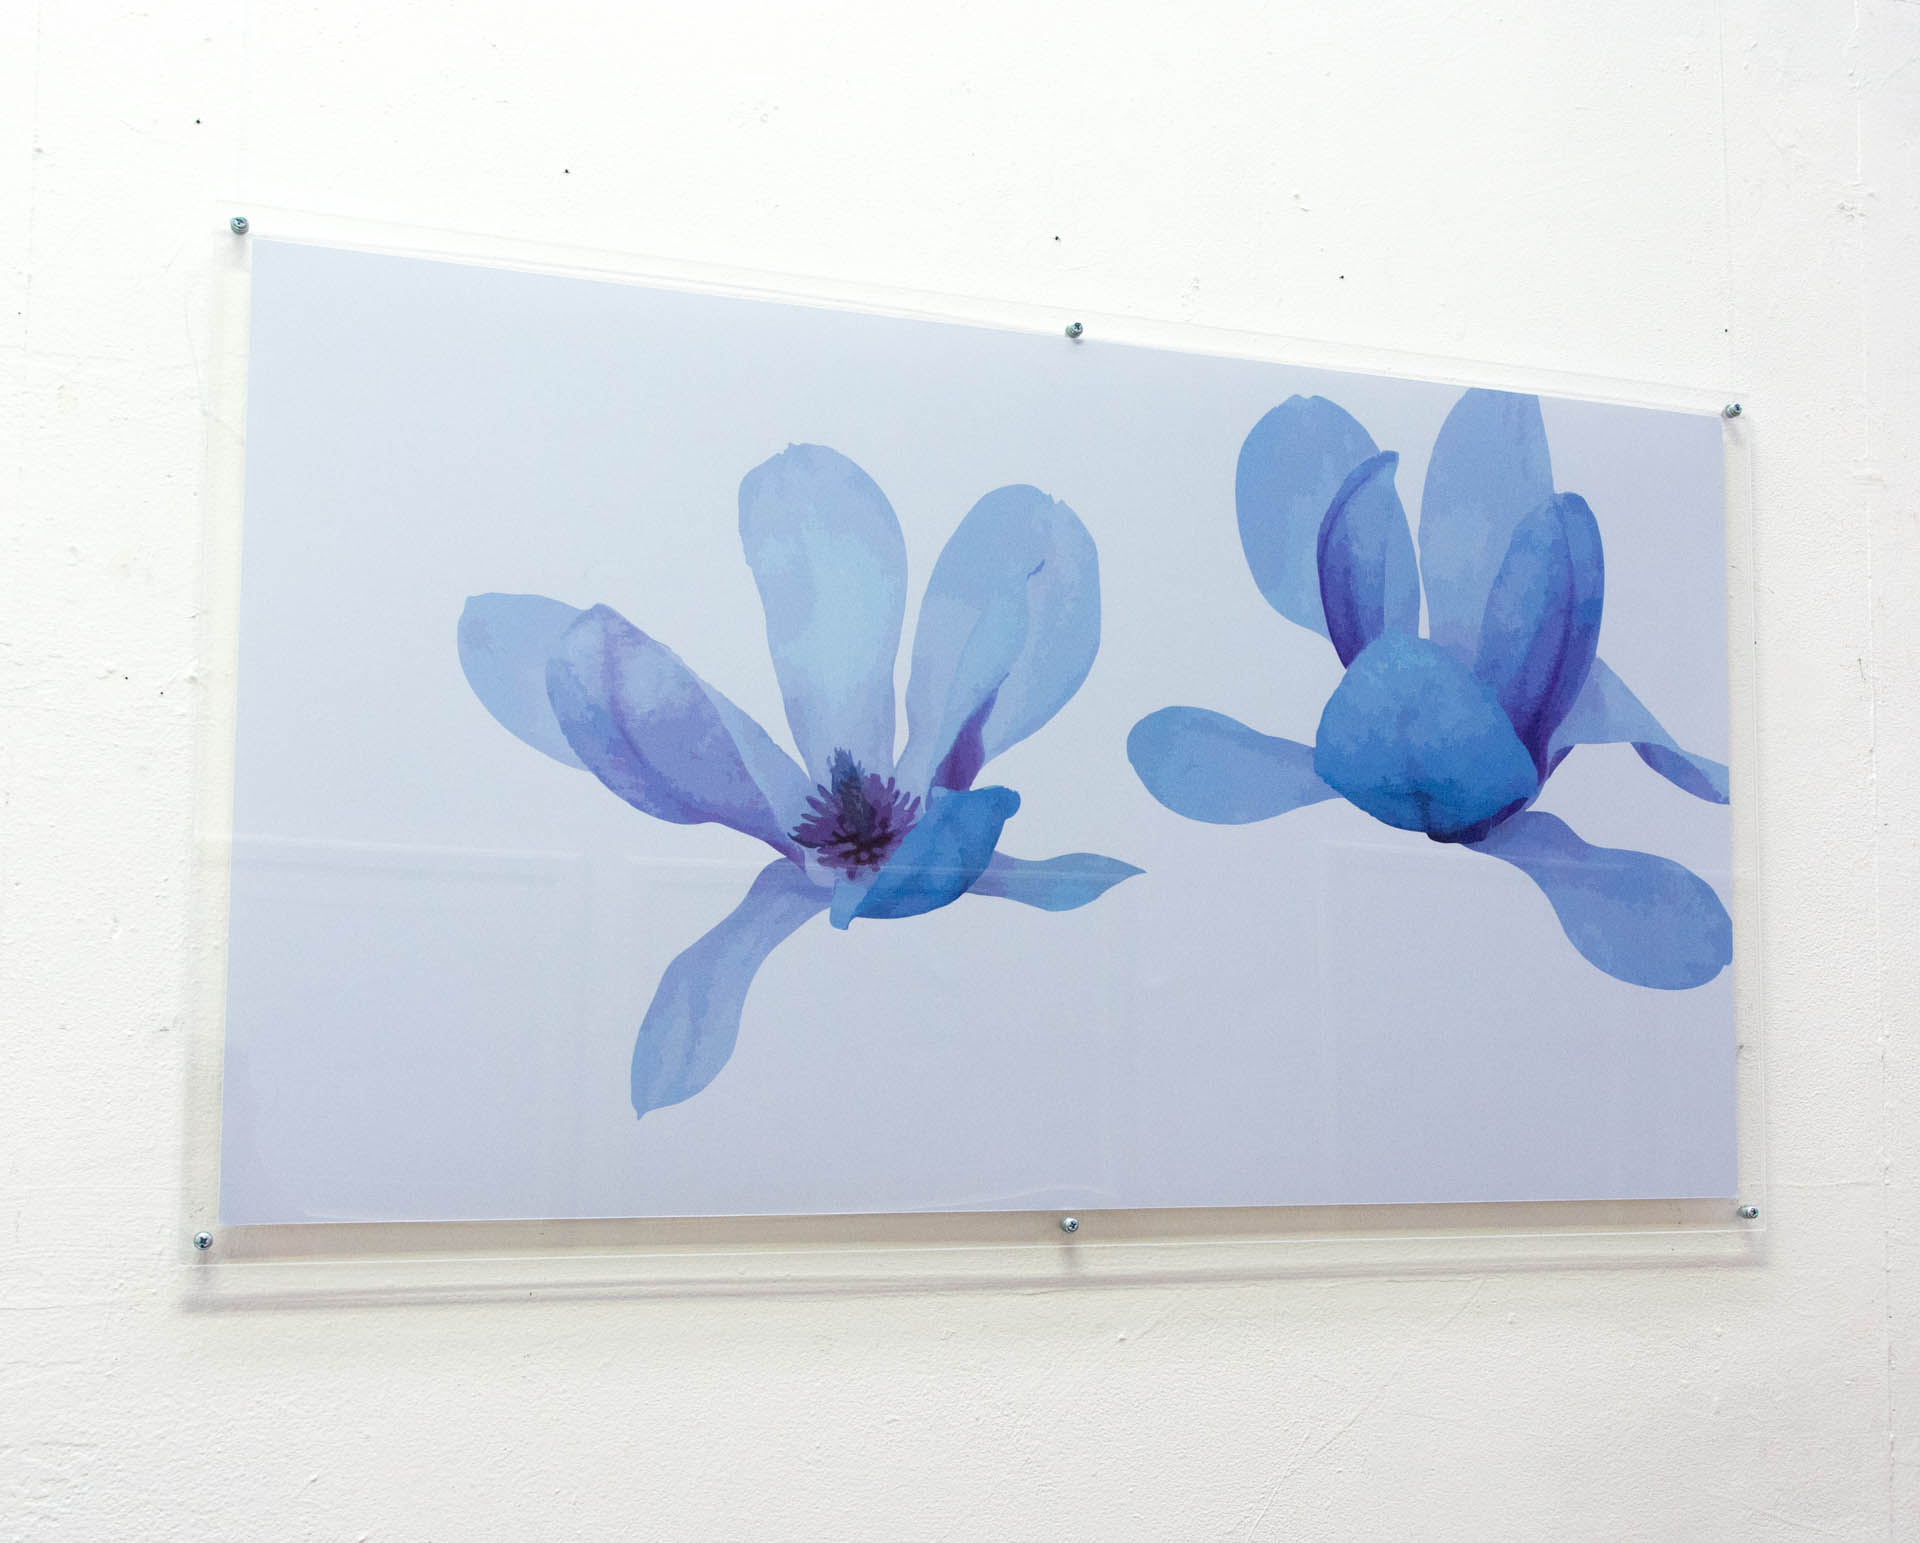 Magnolia 272, Two Big Flowers, photographic paper in acrylic frame